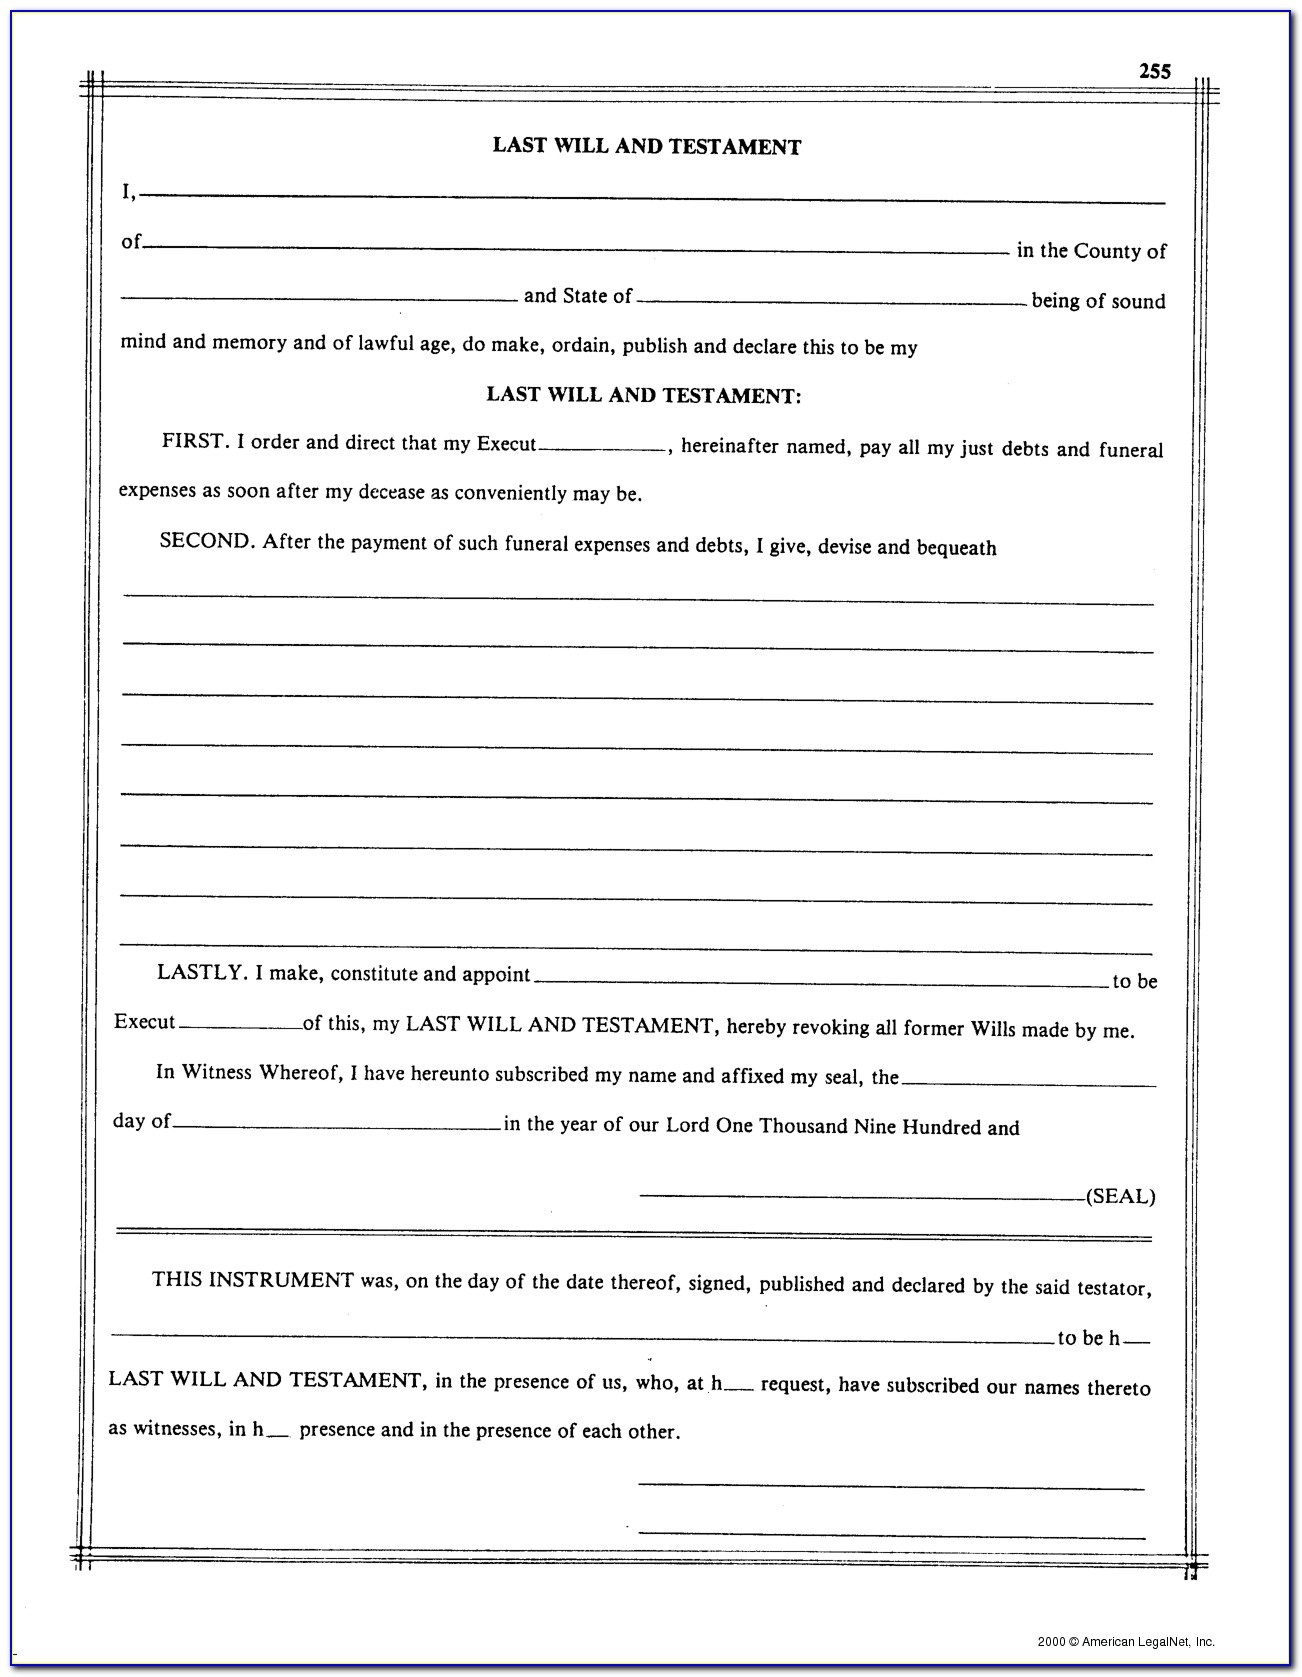 Free Printable Blank Last Will And Testament Forms - Form : Resume - Free Printable Last Will And Testament Forms